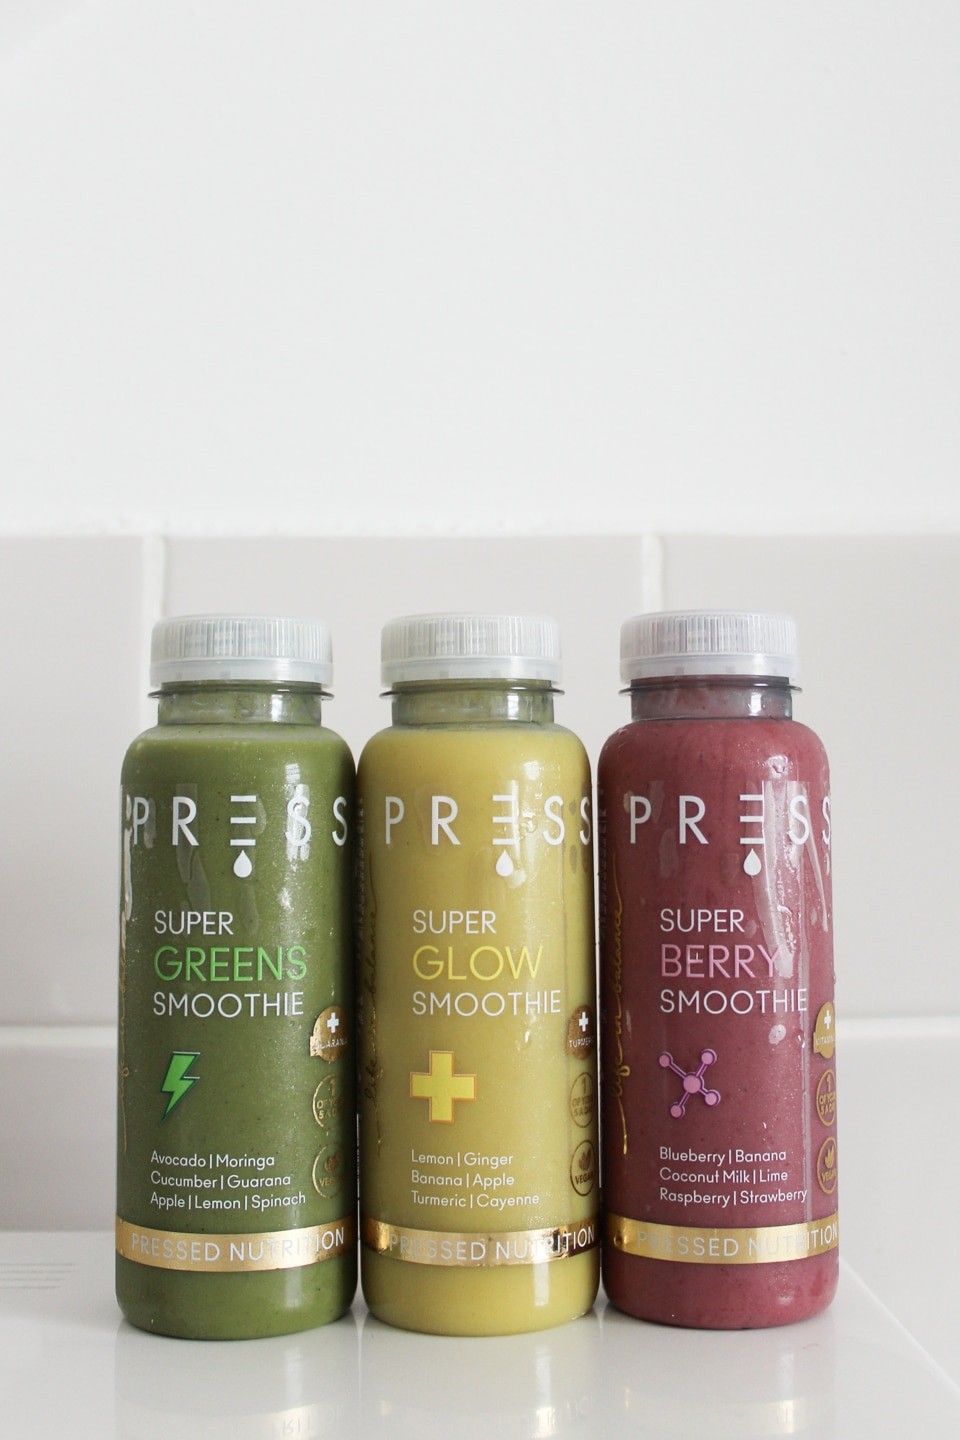 PRESS Super Greens, Super Glow and Super Berry Smoothies